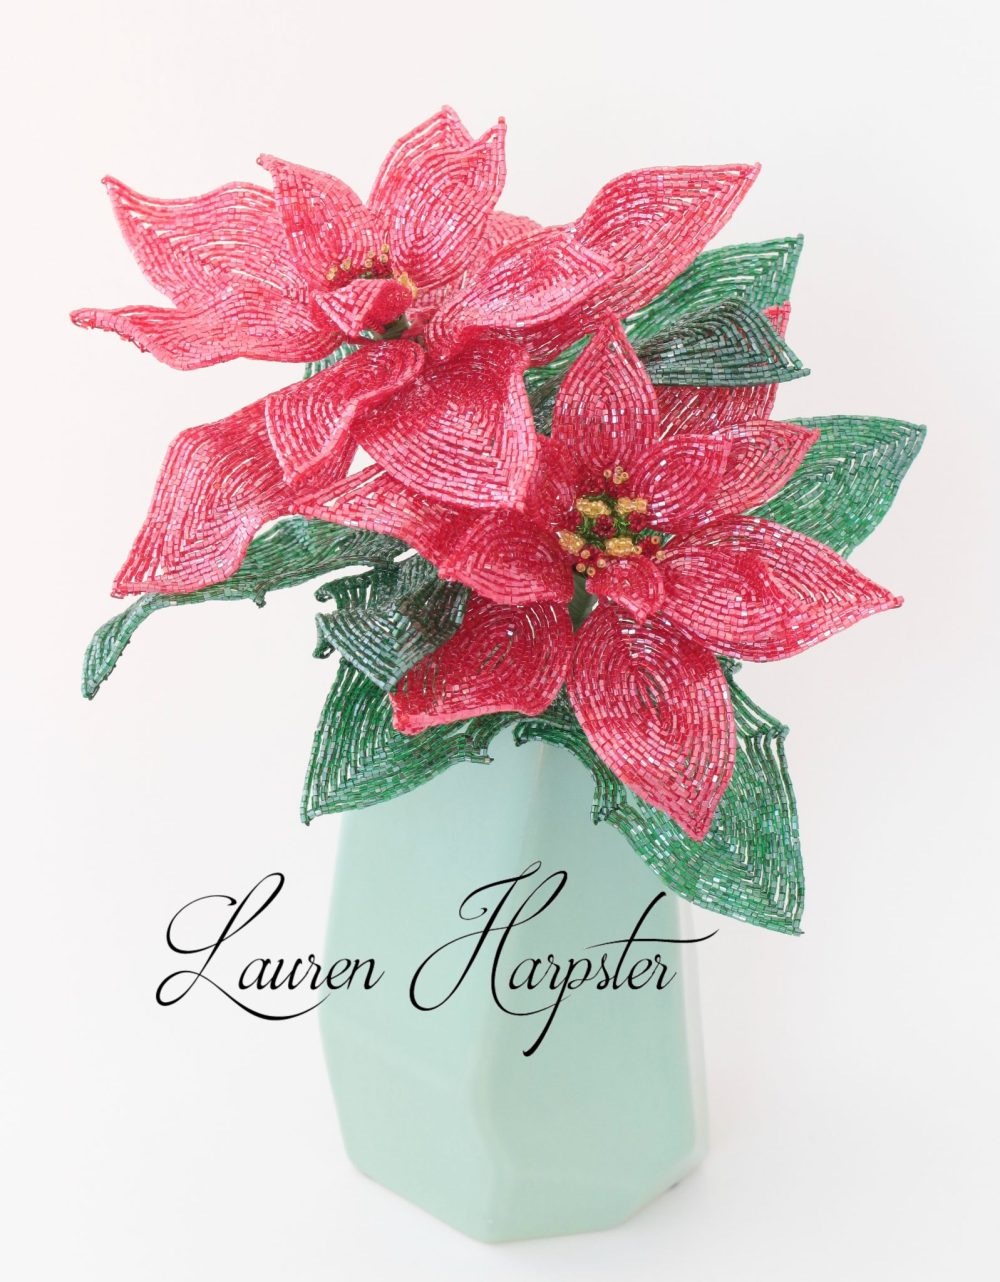 French Beaded Poinsettias by Lauren Harpster